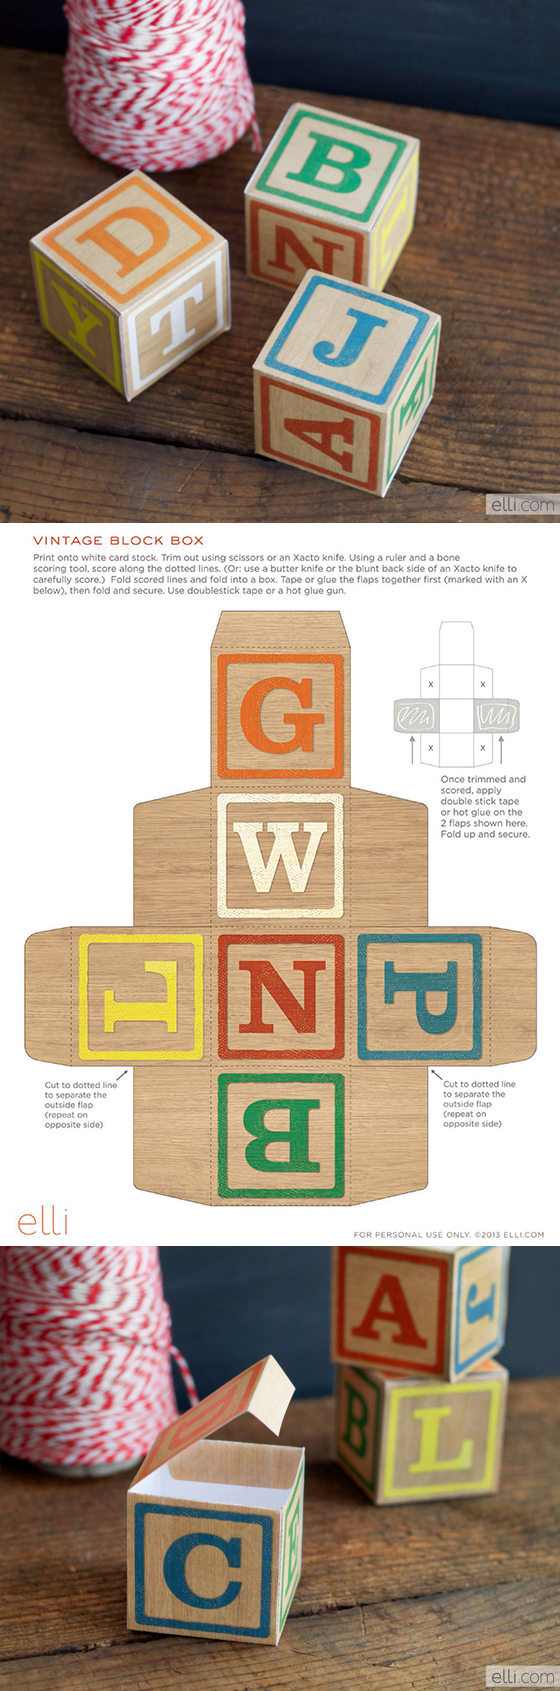 Alphabet Block Boxes - free template from The Elli blog ...